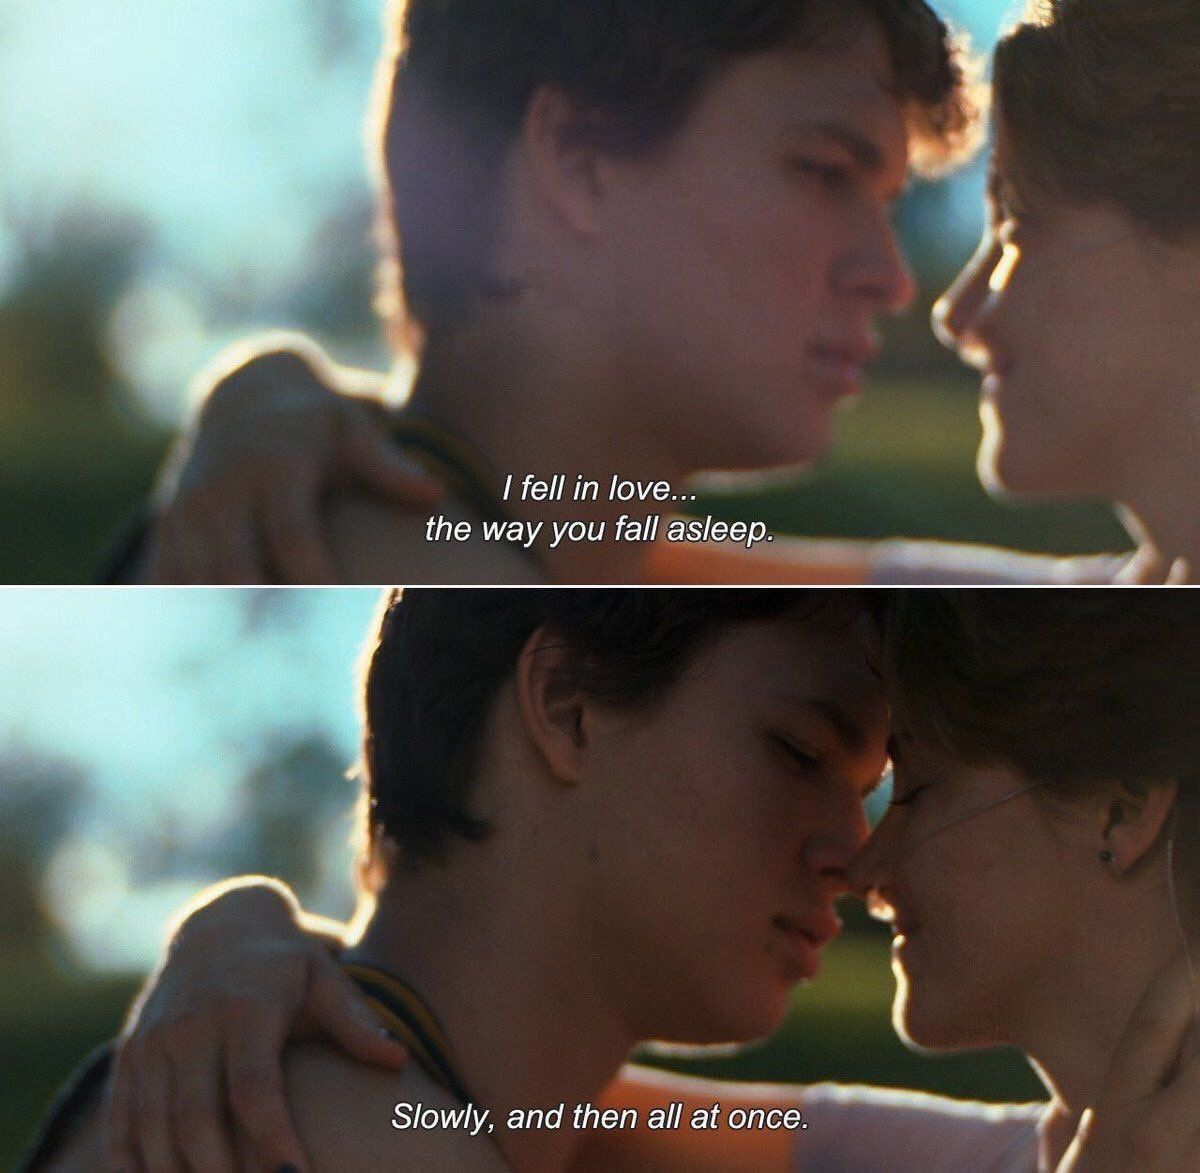 Pin by Gabby Correia on captions | Movie quotes ...